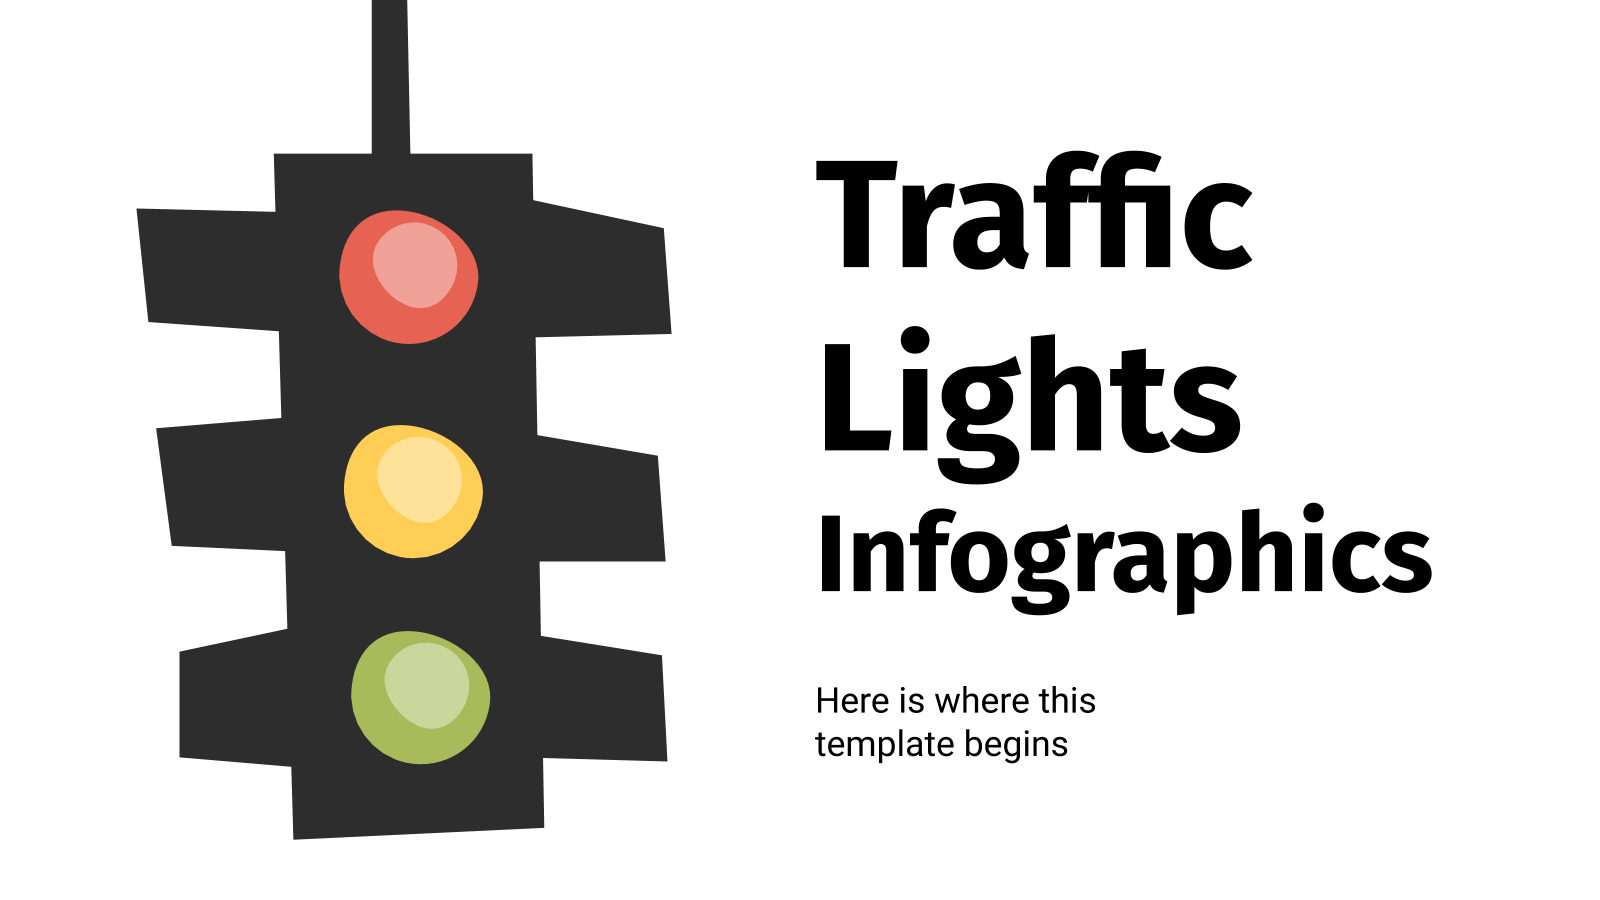 Traffic Lights Infographics presentation template